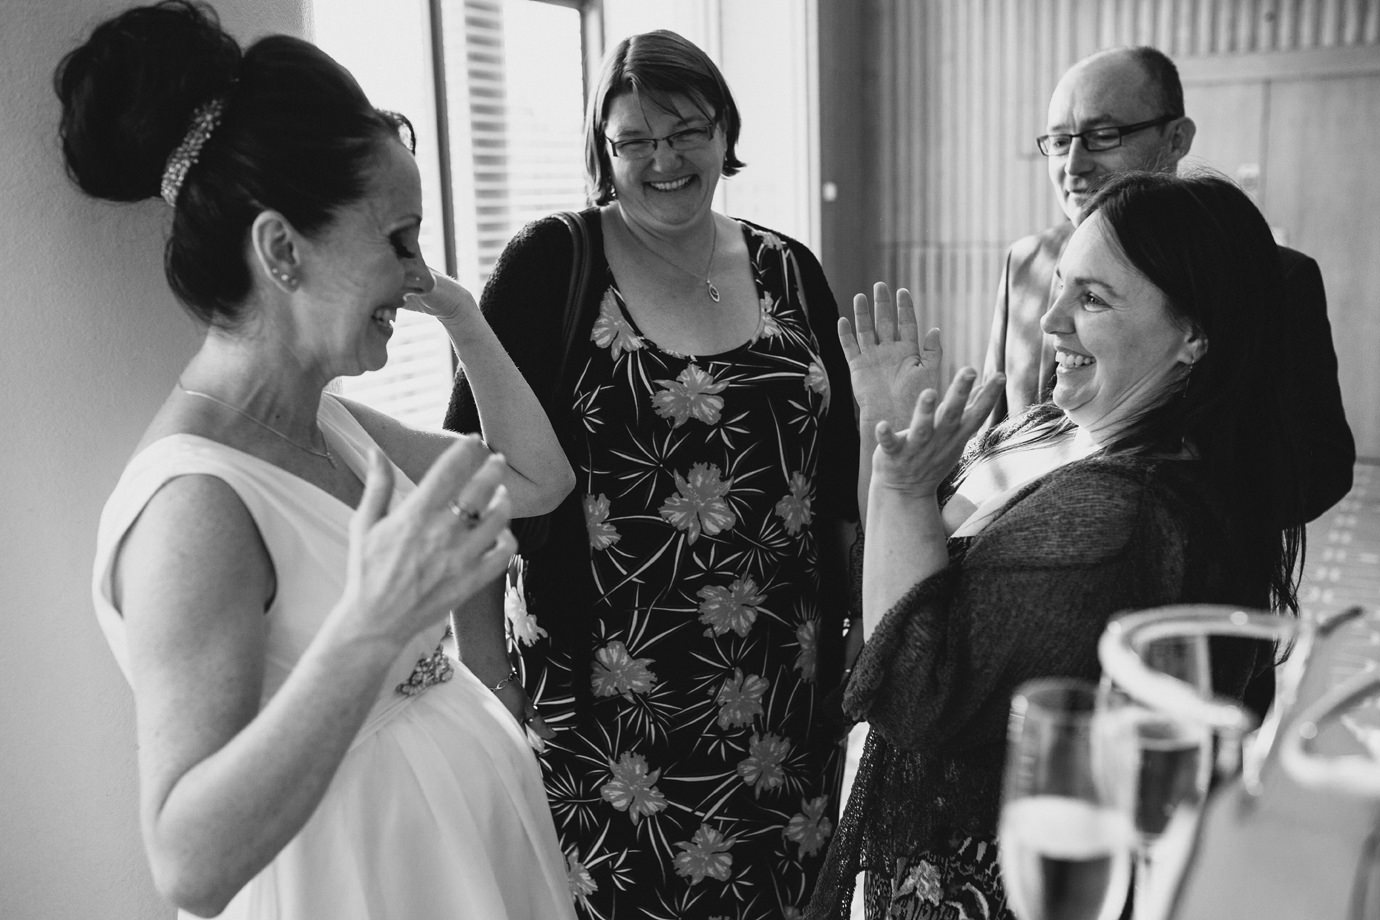 Bride meeting family and friends, candid wedding photography, London